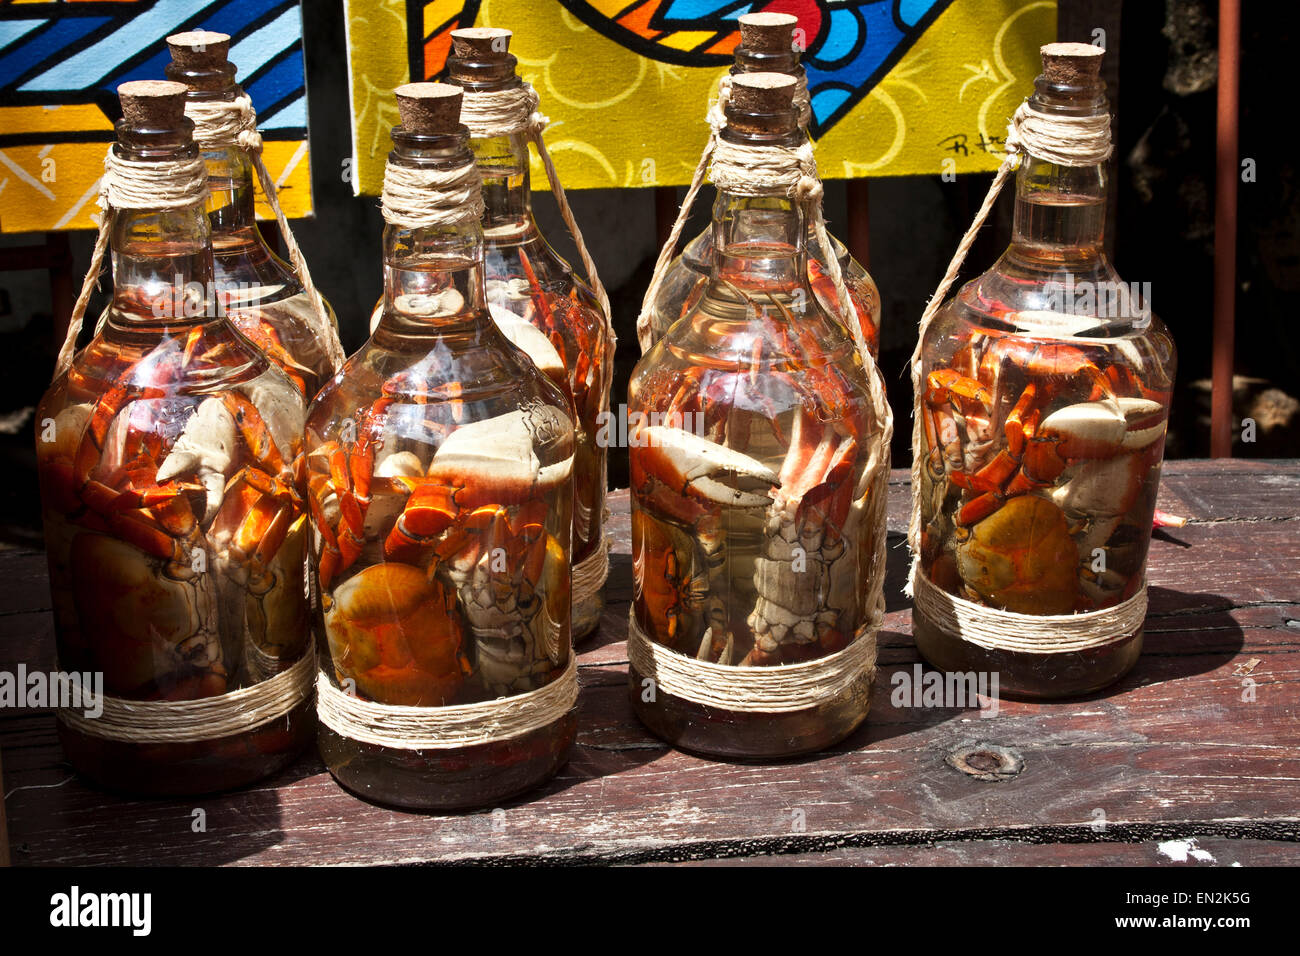 Olinda, Recife, Pernambuco, Brazil, pickled crabs in a bottle at a  street market - Stock Image